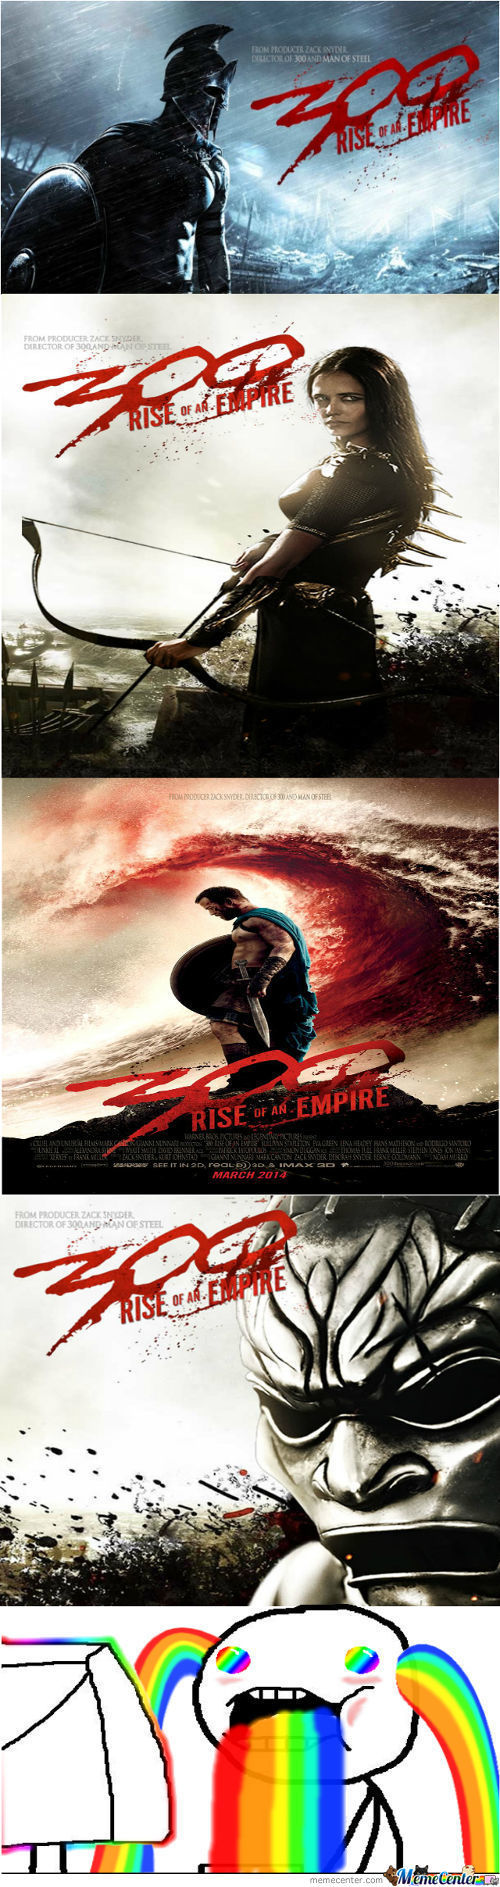 300 Rise Of An Empire March 2014 F**c I Con't Wait